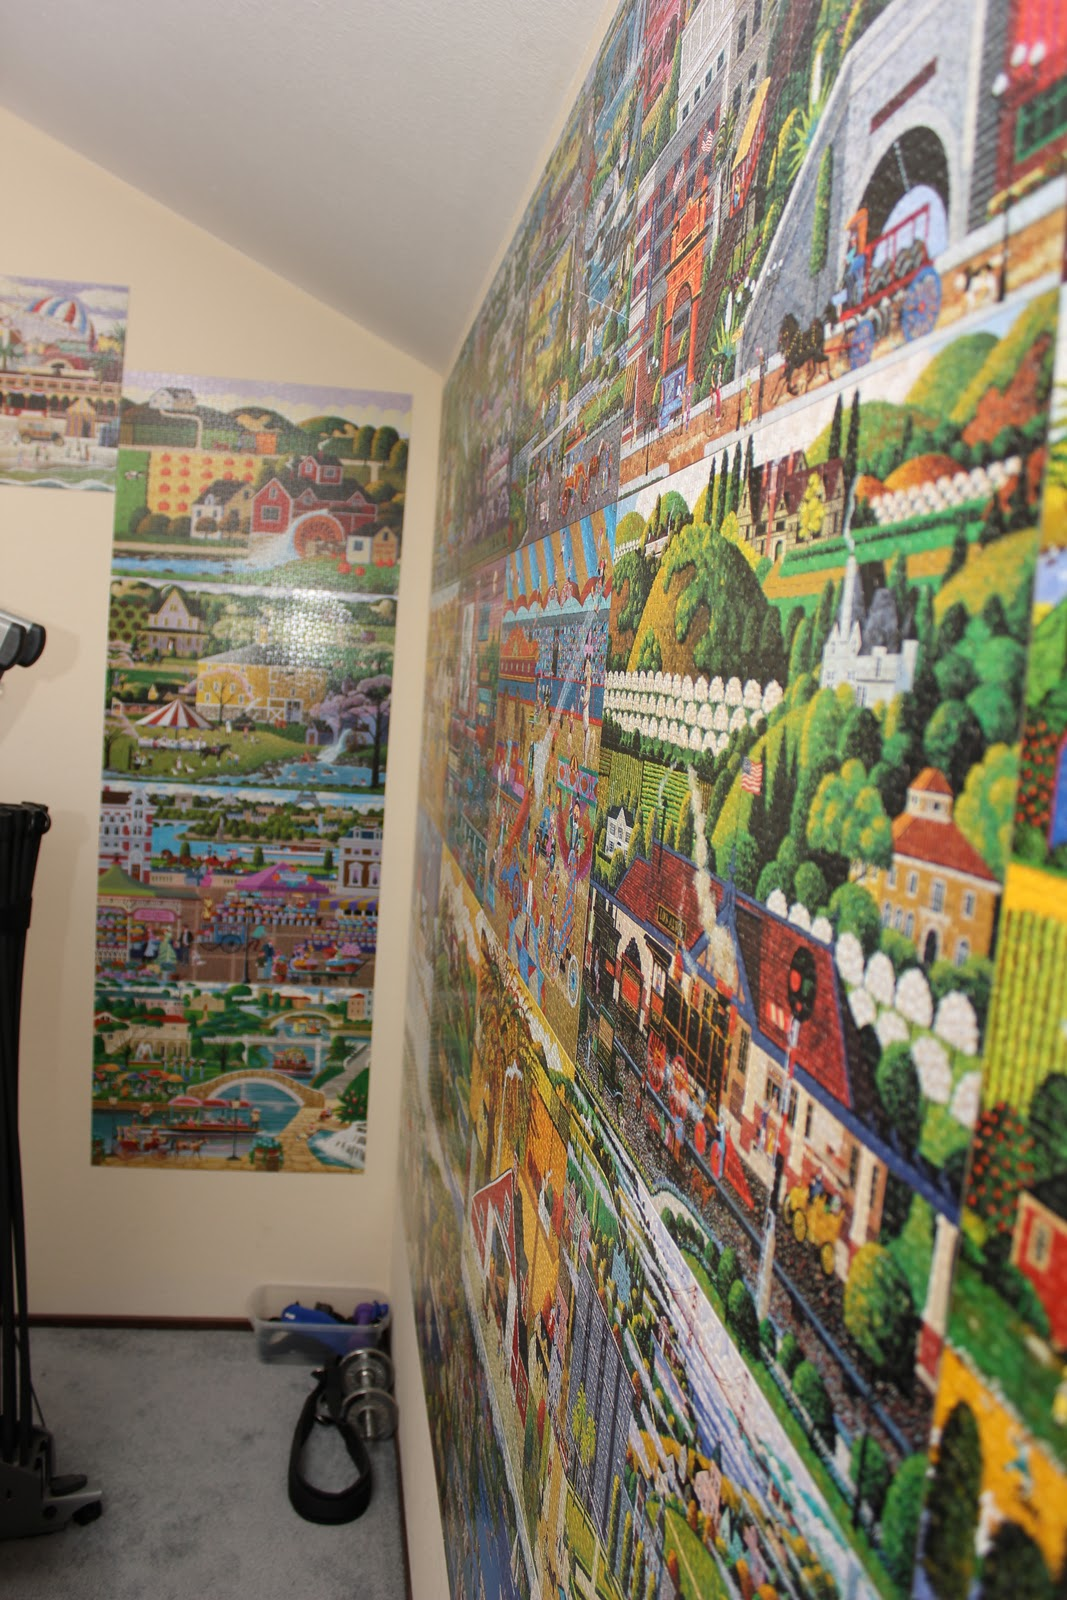 Greg S Blog 33 Puzzles On The Man Cave Walls